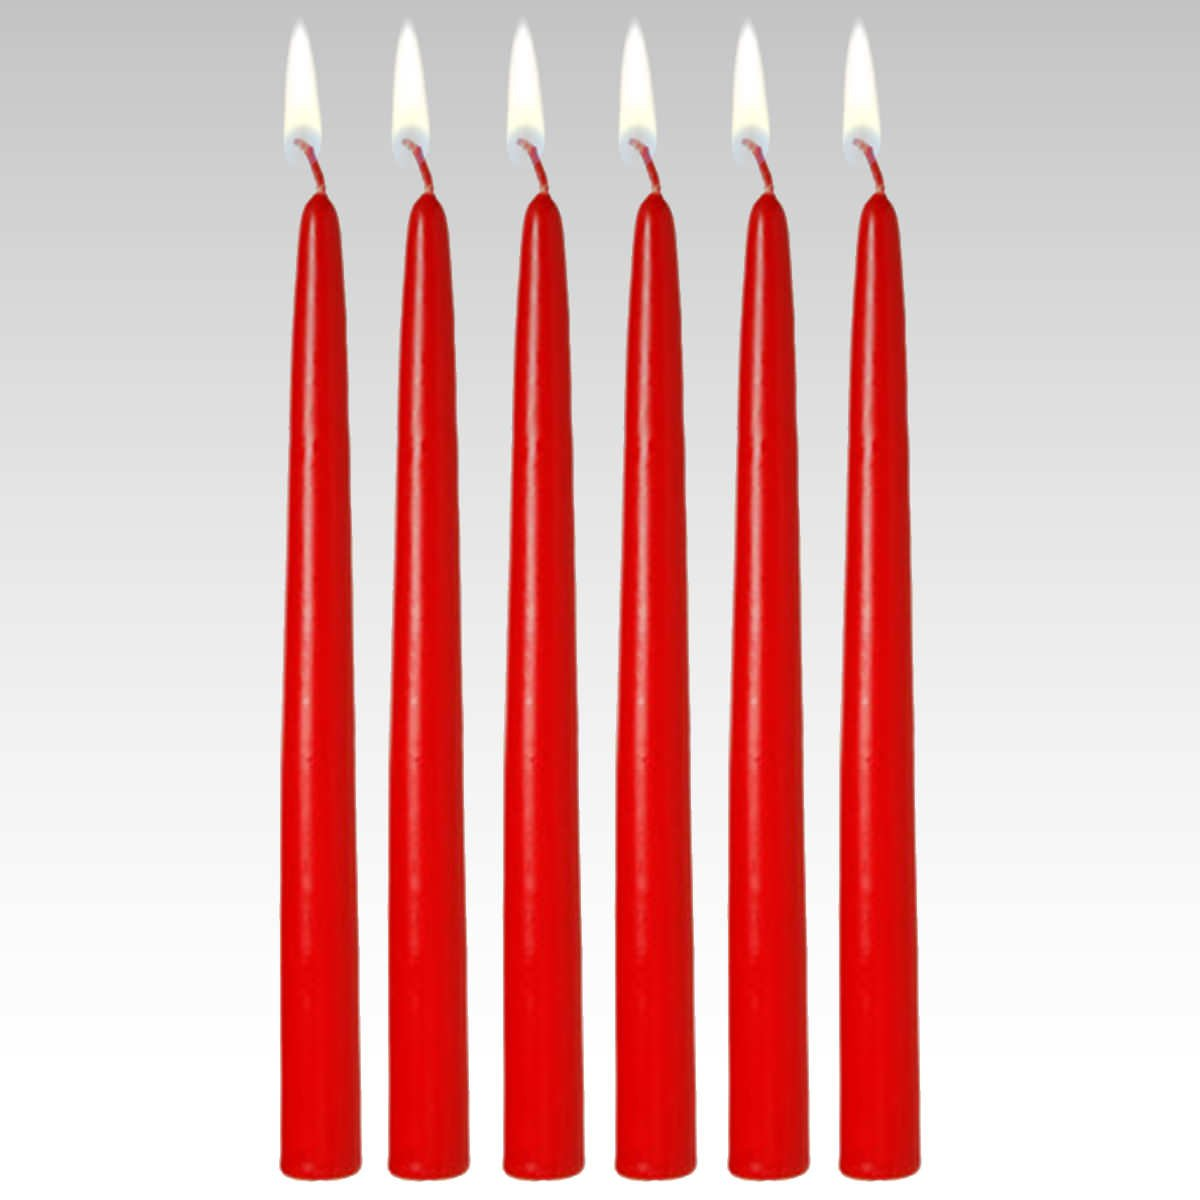 Candles4Less - Bulk 10 Inch Red Taper Candles (144 pcs/cs) Dripless and Smokeless Unscented Red Taper candles with Lead Free Cotton Wicks Made in USA